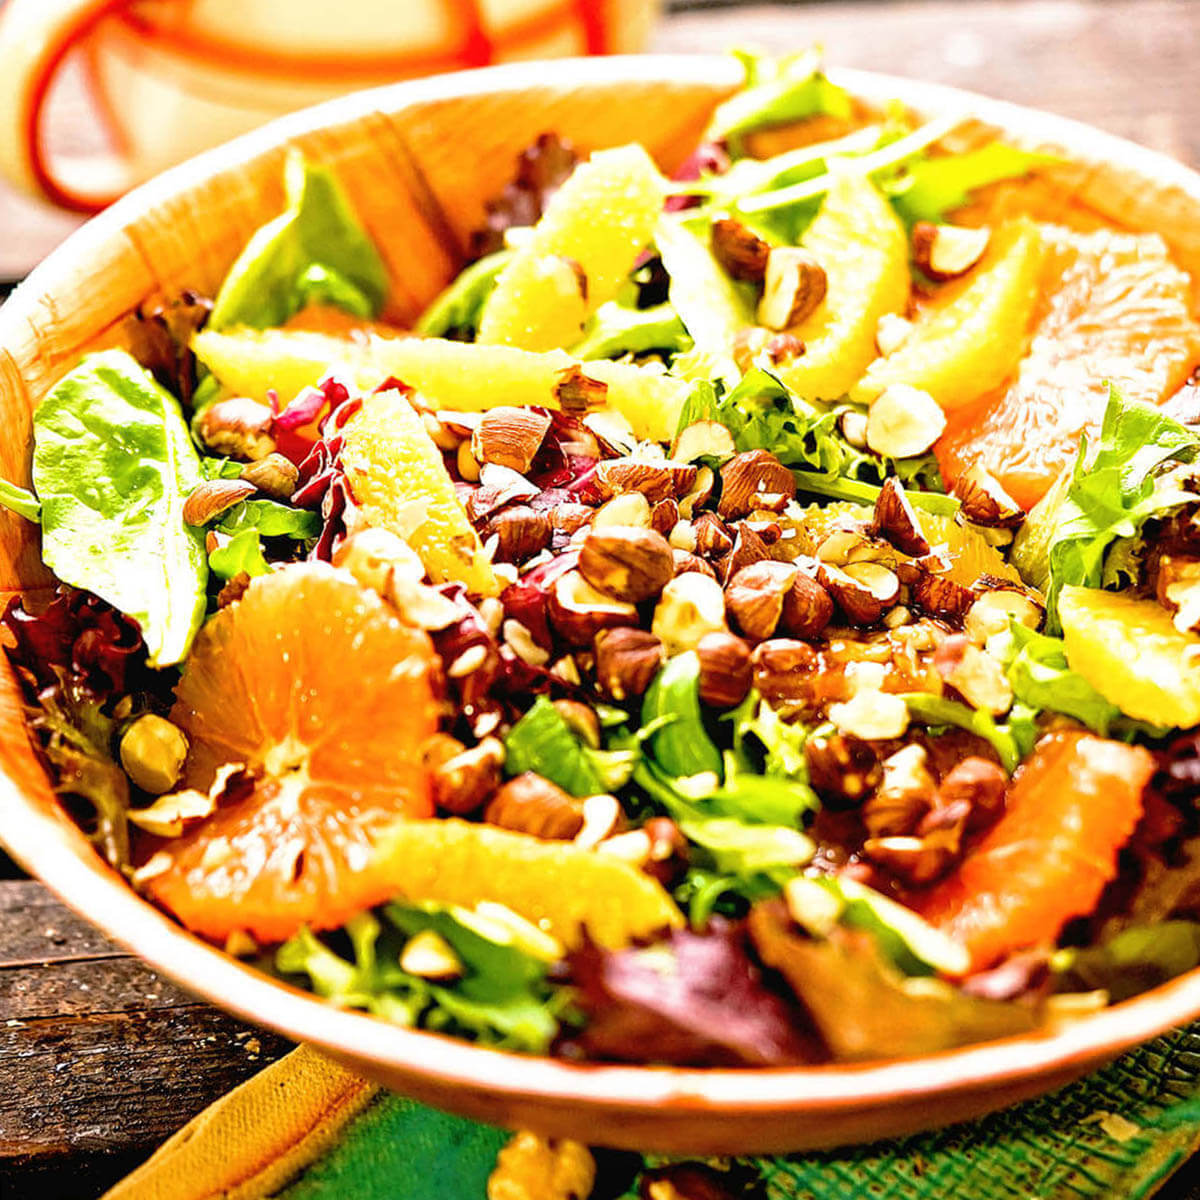 Citrus Green Salad topped with nuts.